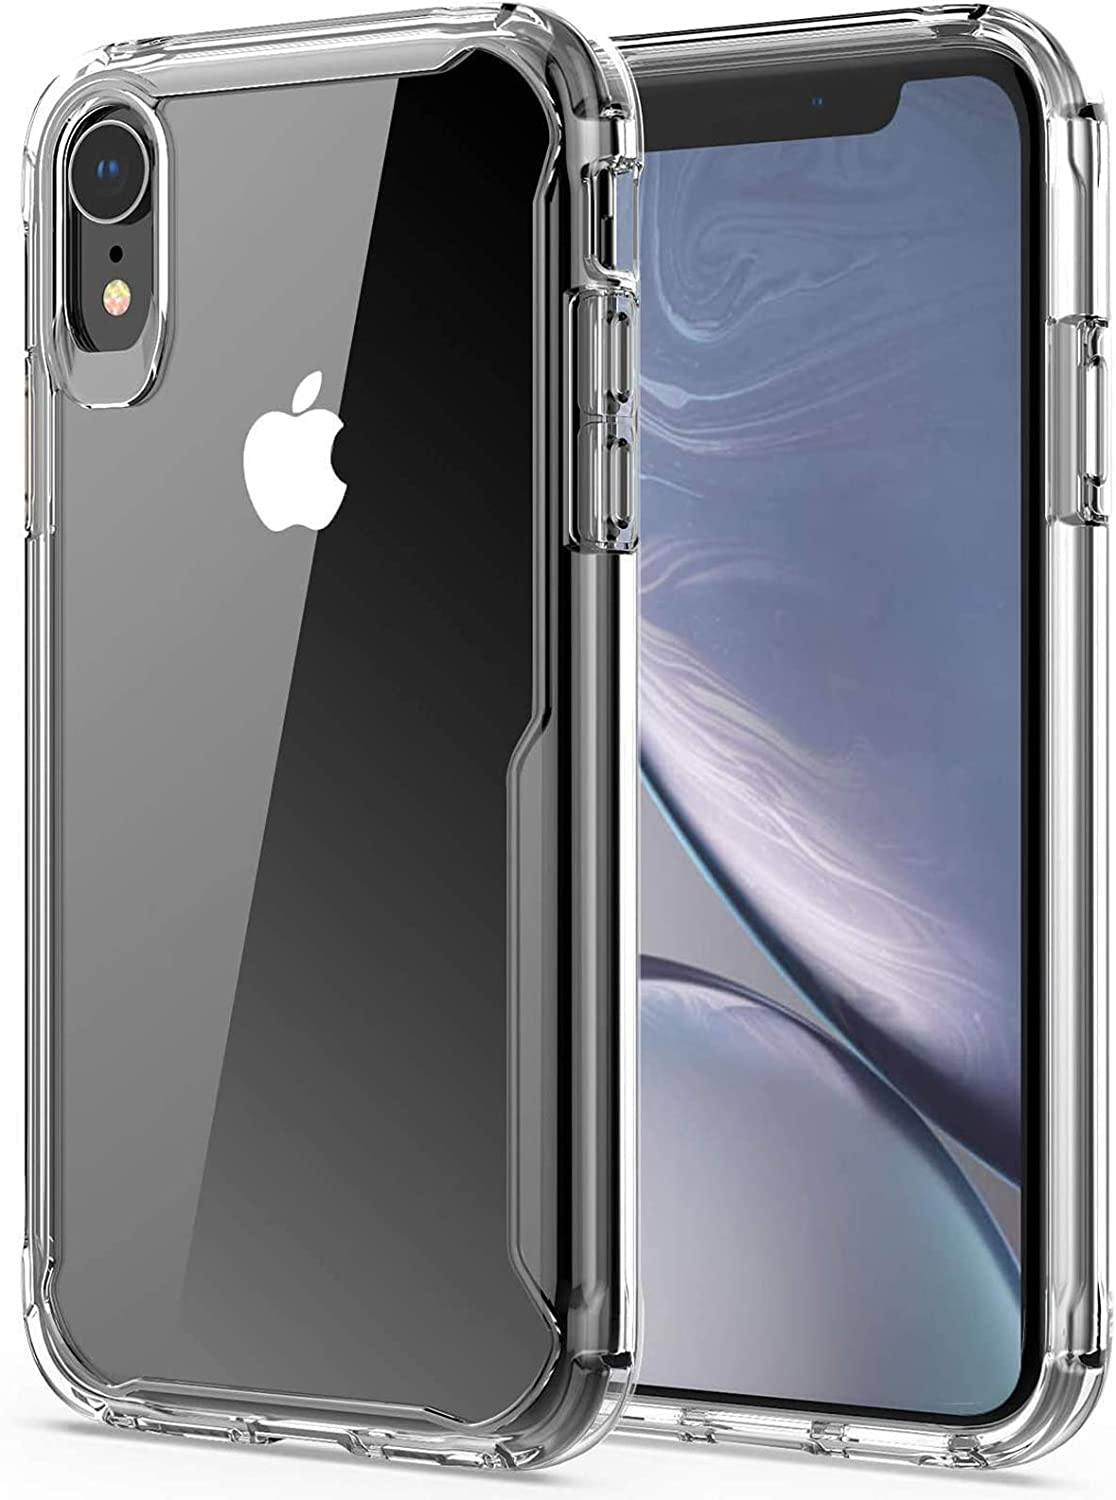 iPhone XR Case, Slim Crystal Clear Soft Shockproof Case Heavy Duty Protective Cover Scratchproof Case,Reinforced TPU Bumper Hard PC Back Cover for iPhone XR 6.1 inch (Crystal Clear)